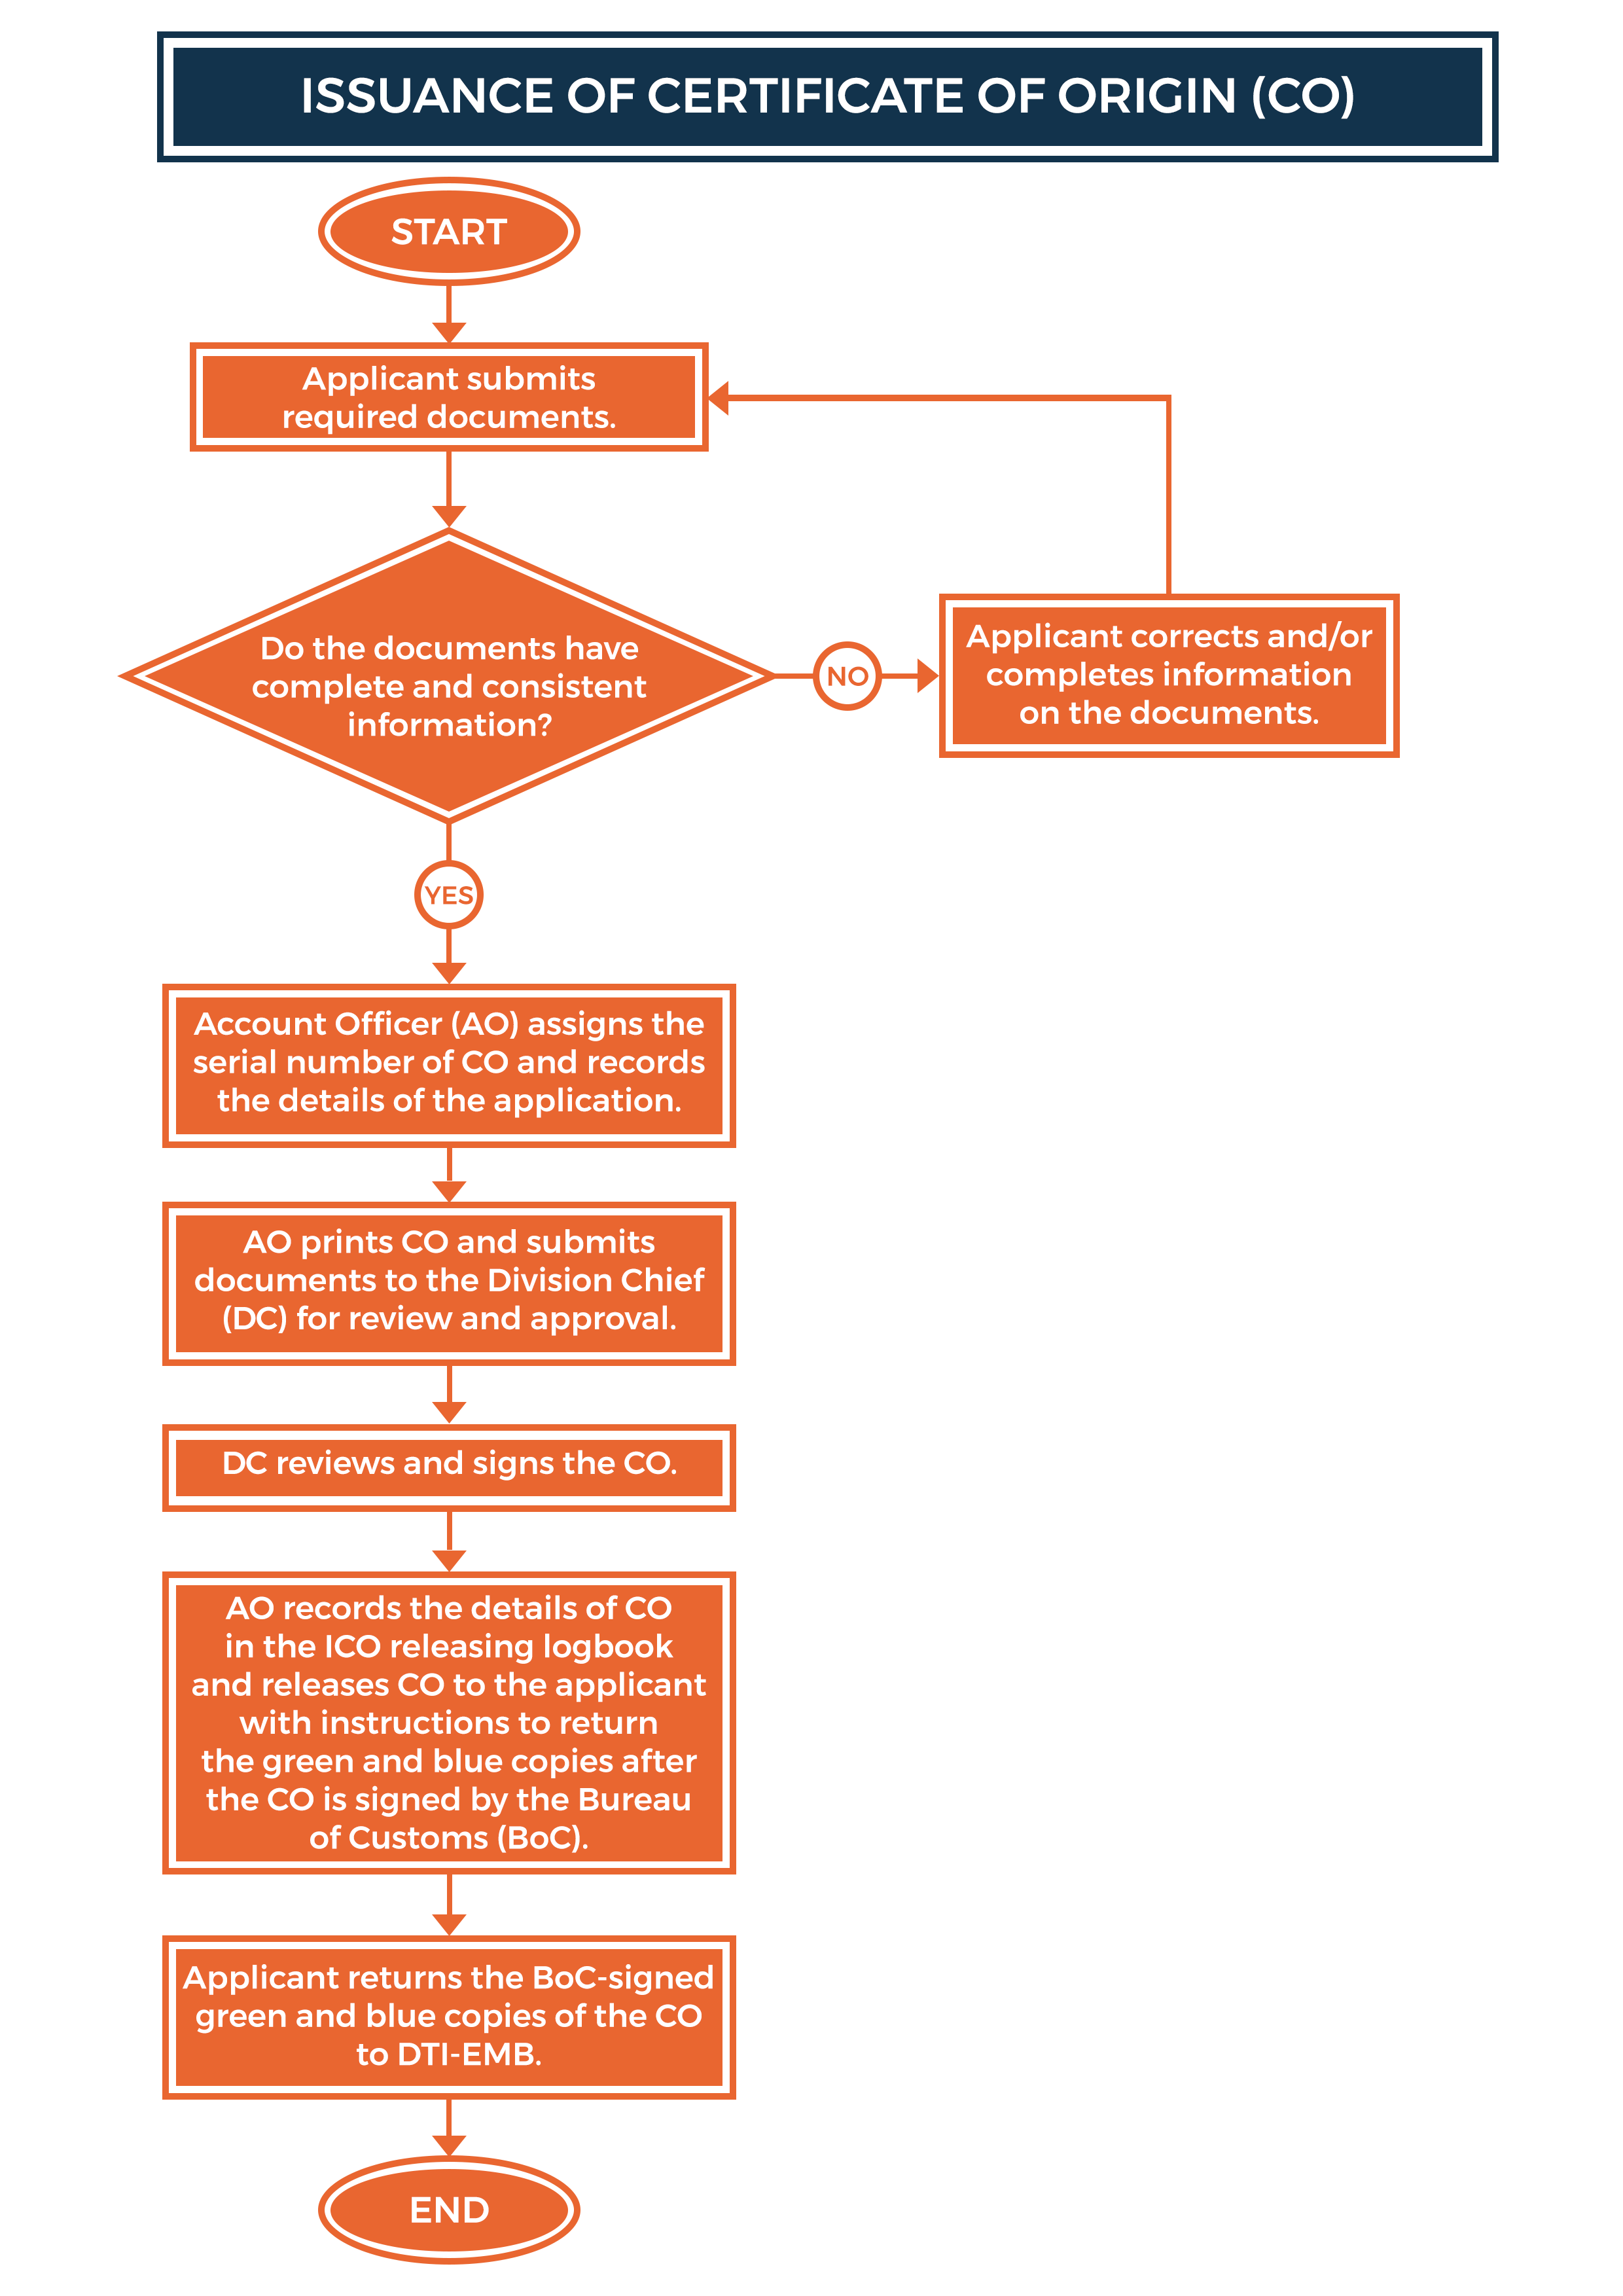 Issuance of Coffee Certificate of Origin Flowchart